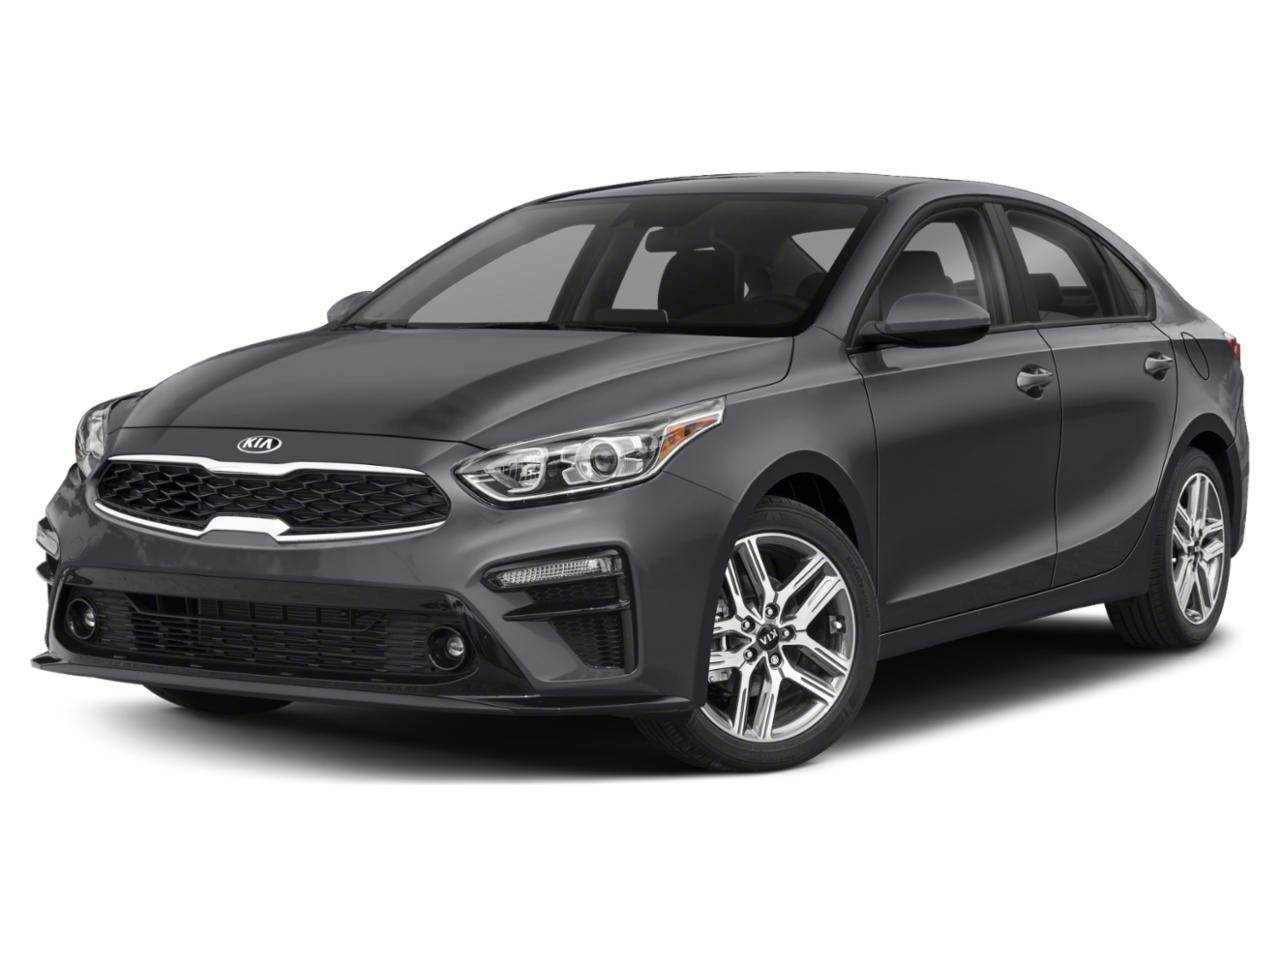 2019 Kia Forte Vehicle Photo in Mission, TX 78572